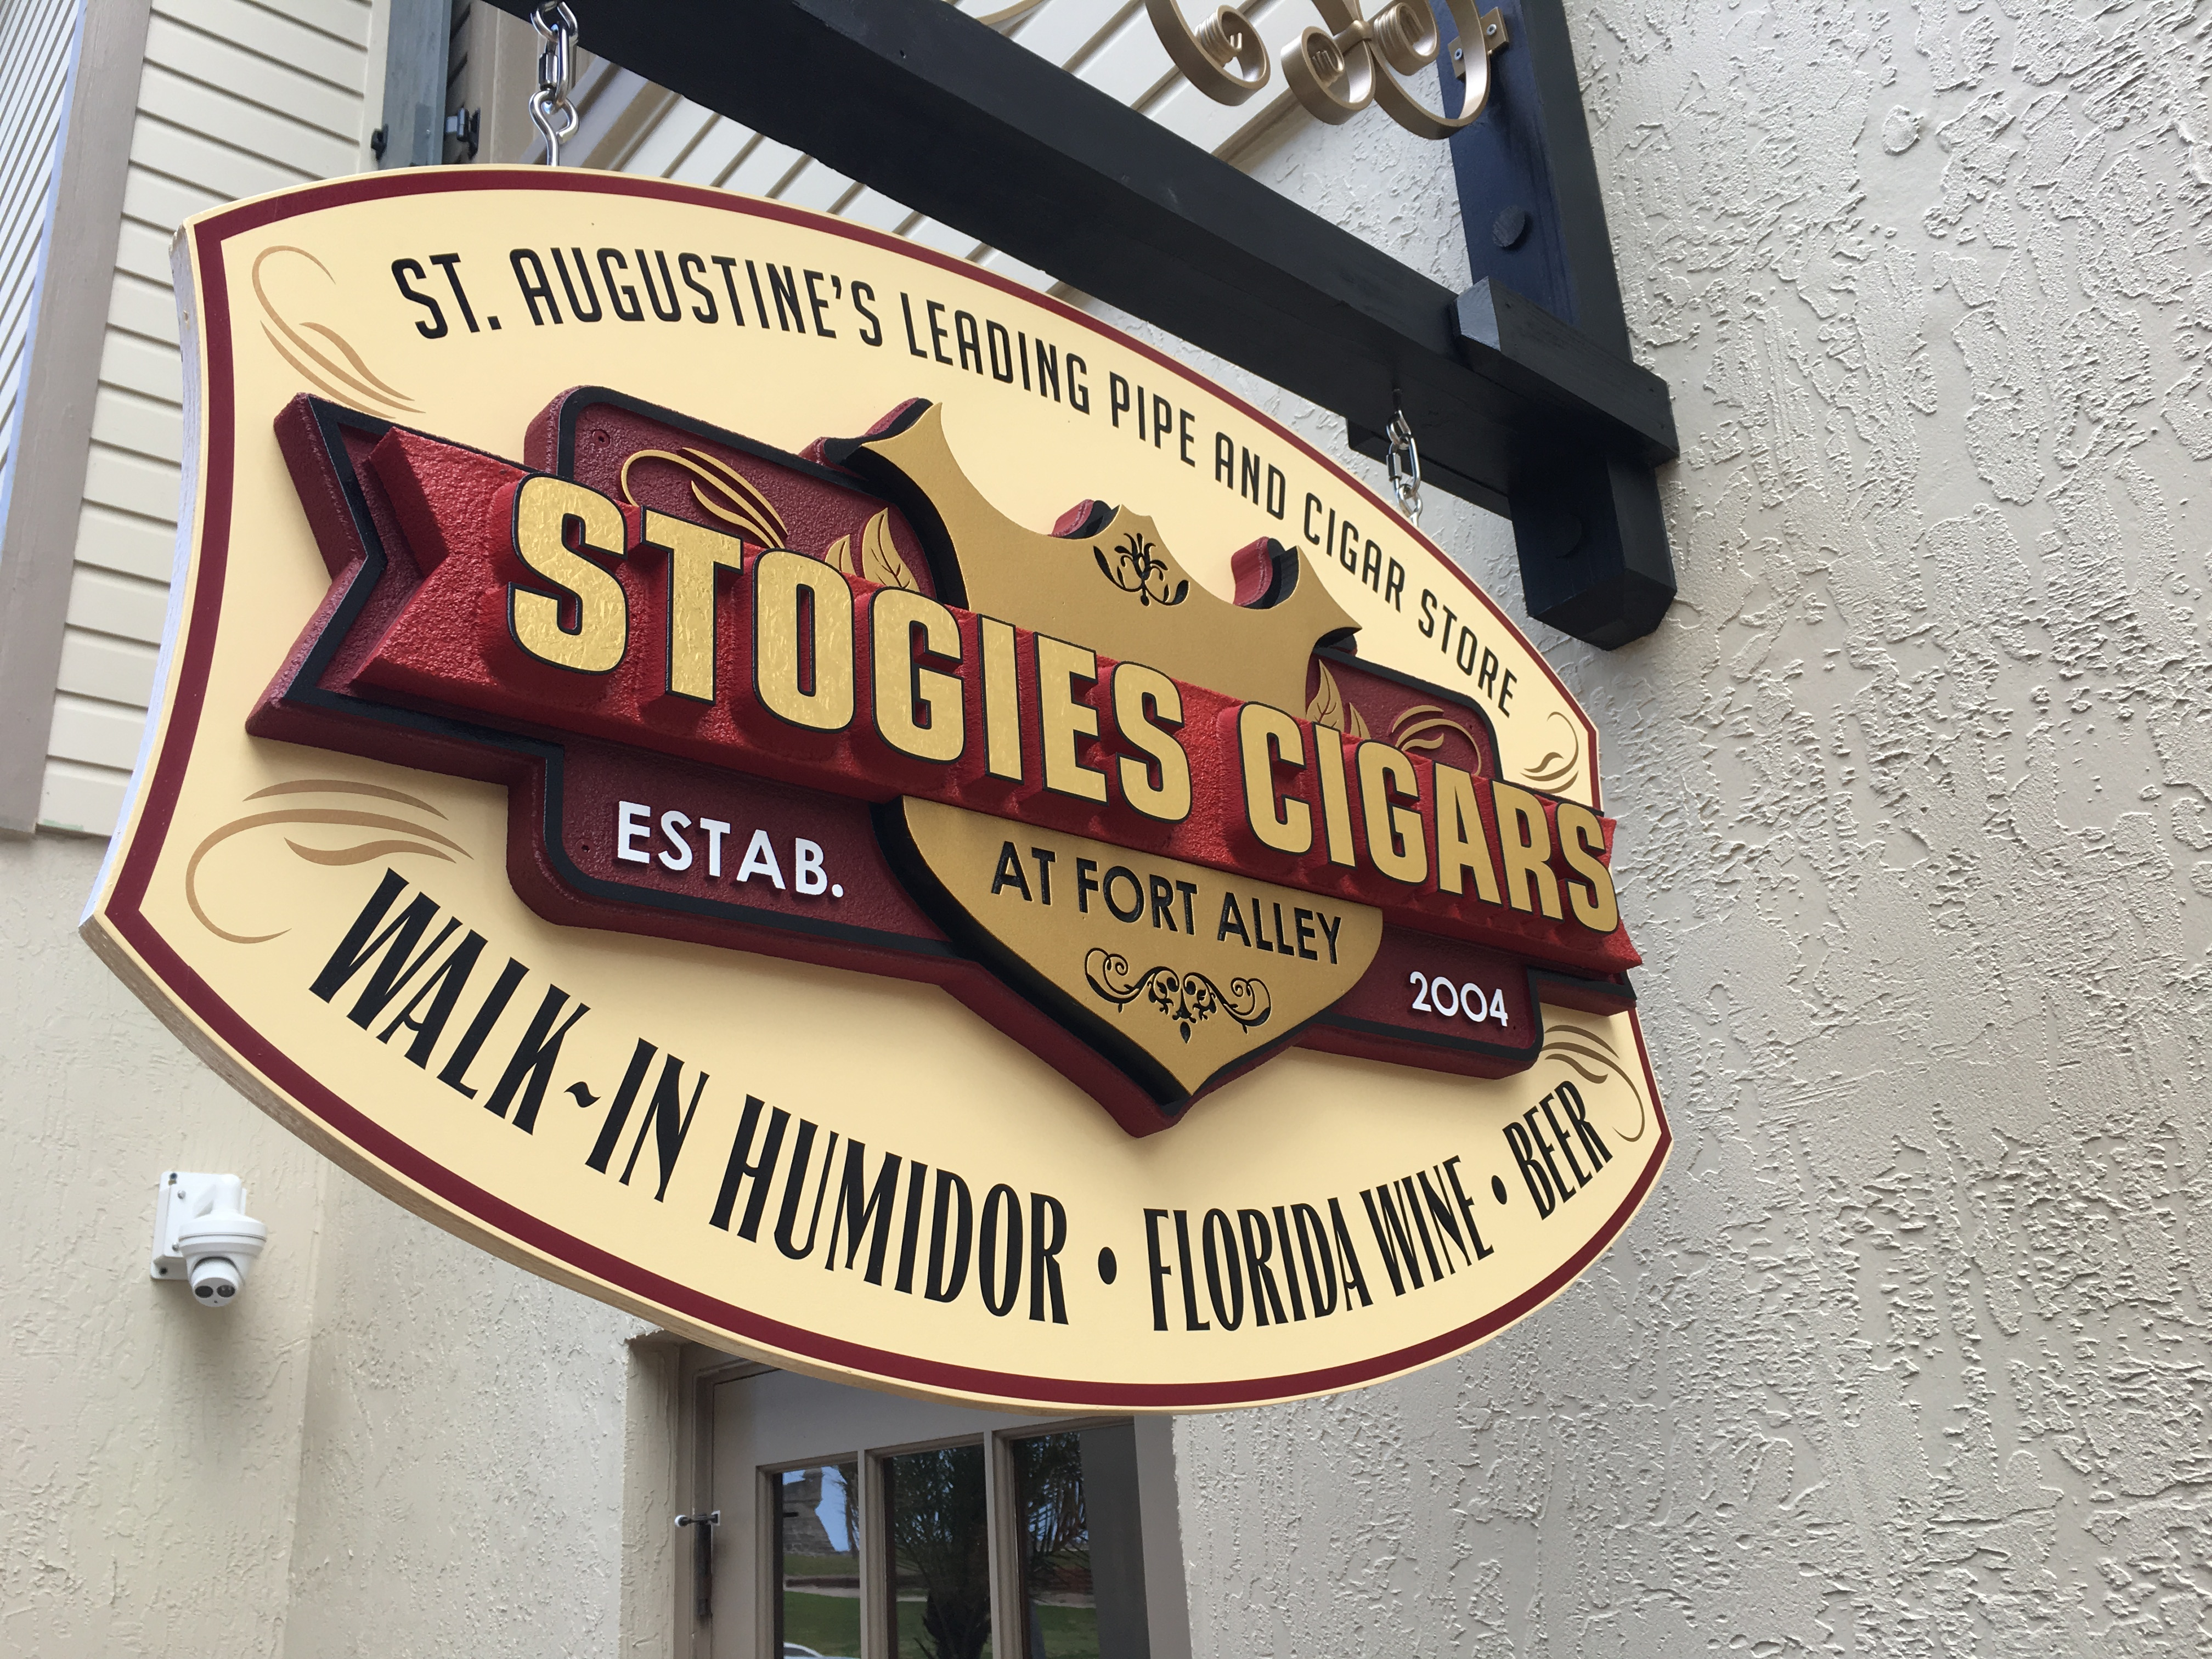 Stogies Cigars at Fort Alley image 2